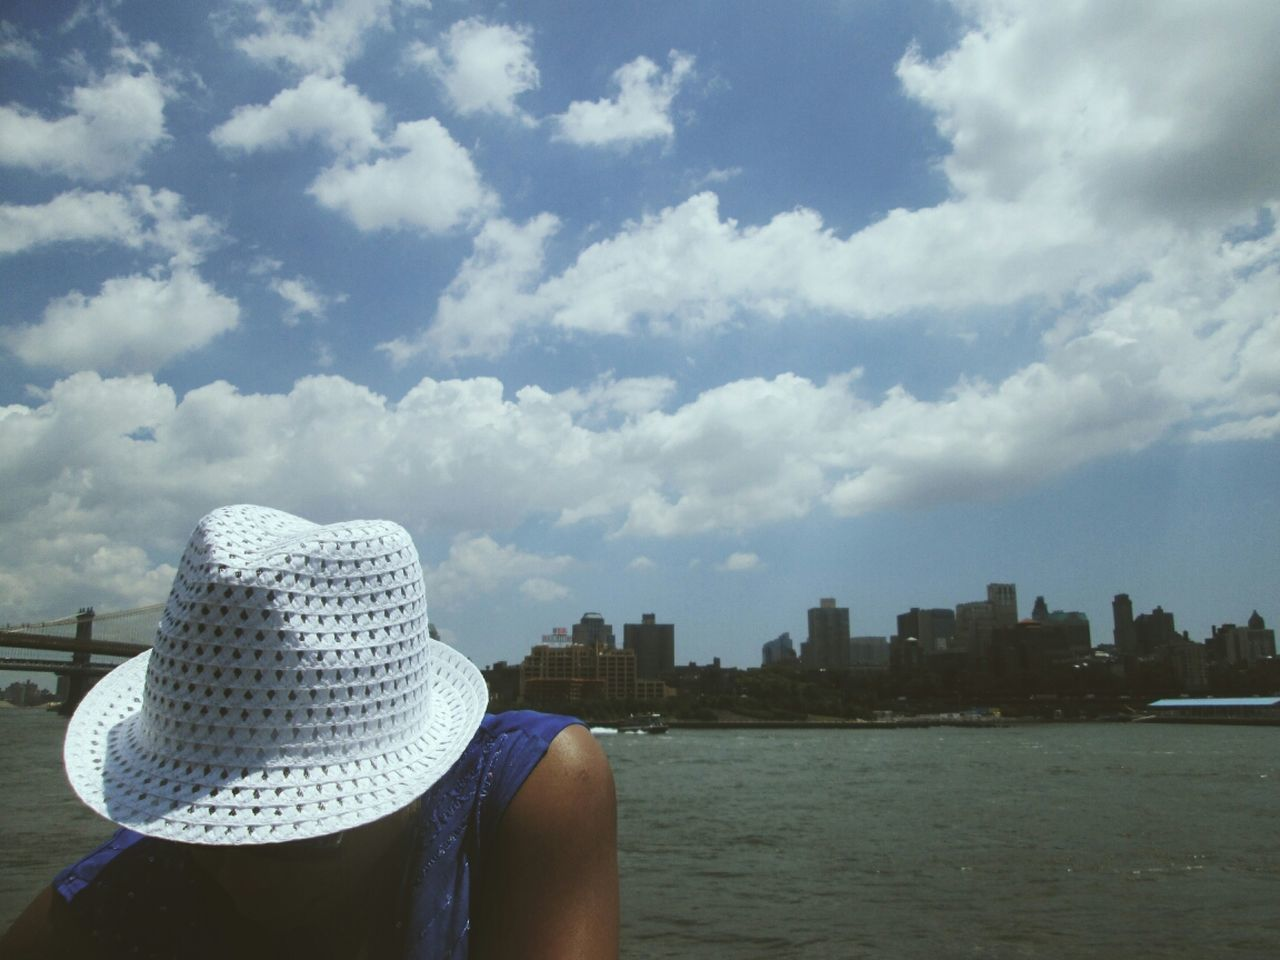 cloud - sky, hat, water, sky, leisure activity, architecture, real people, day, rear view, one person, lifestyles, sea, building exterior, headshot, women, built structure, outdoors, sun hat, nature, city, men, vacations, cityscape, people